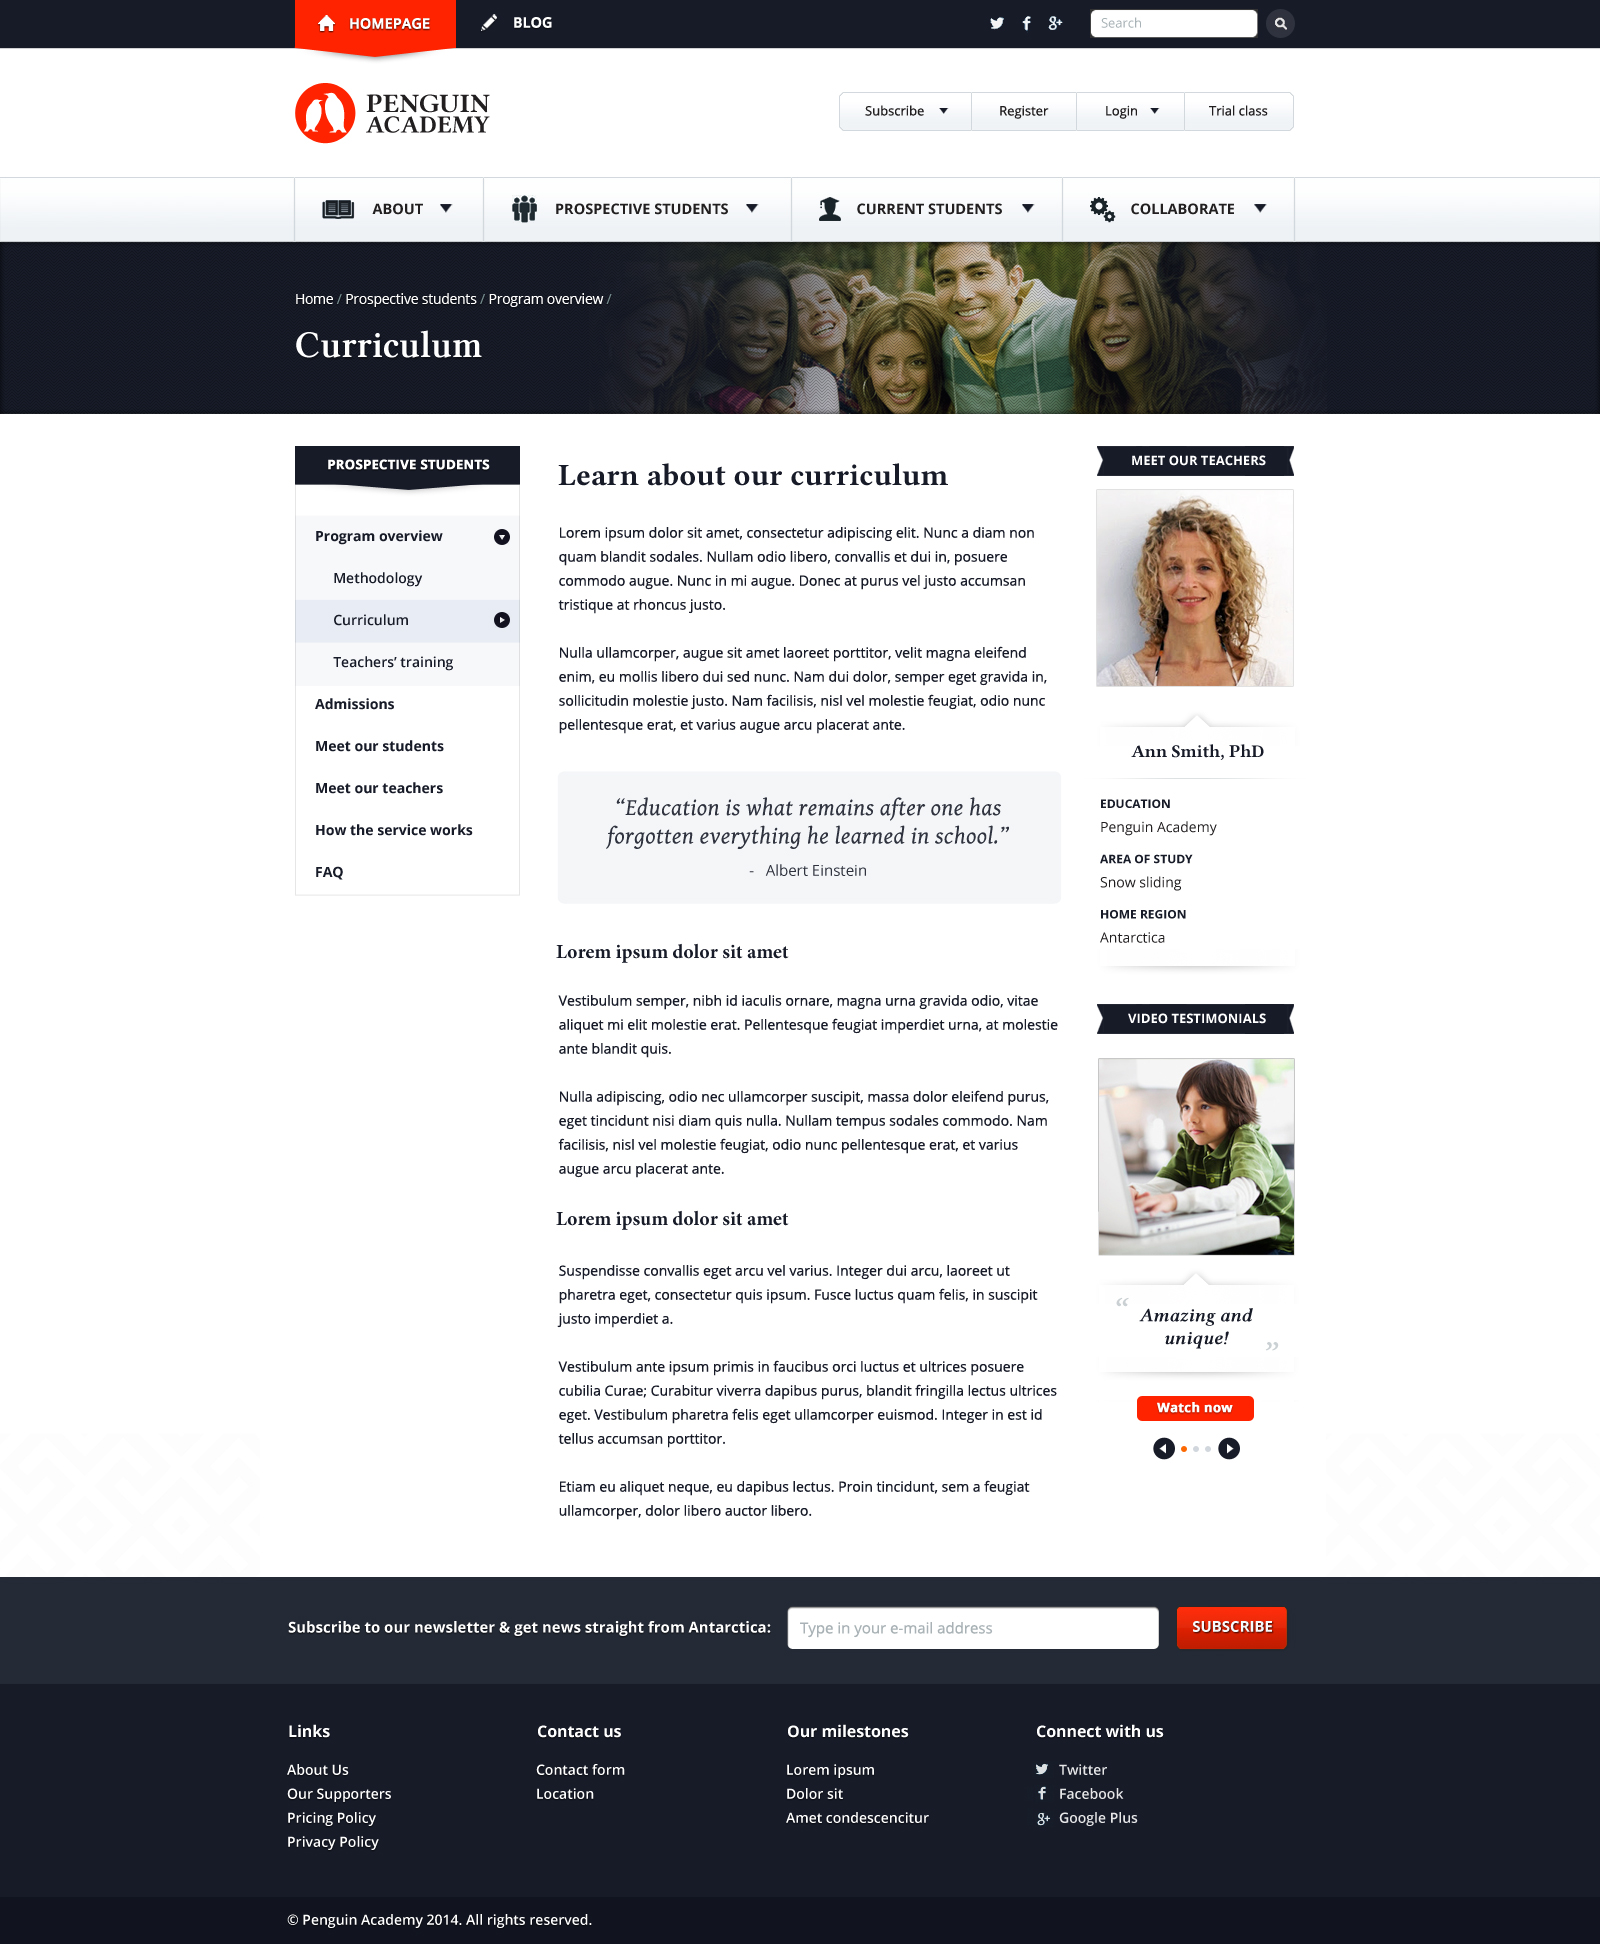 Penguin Academy Website Design